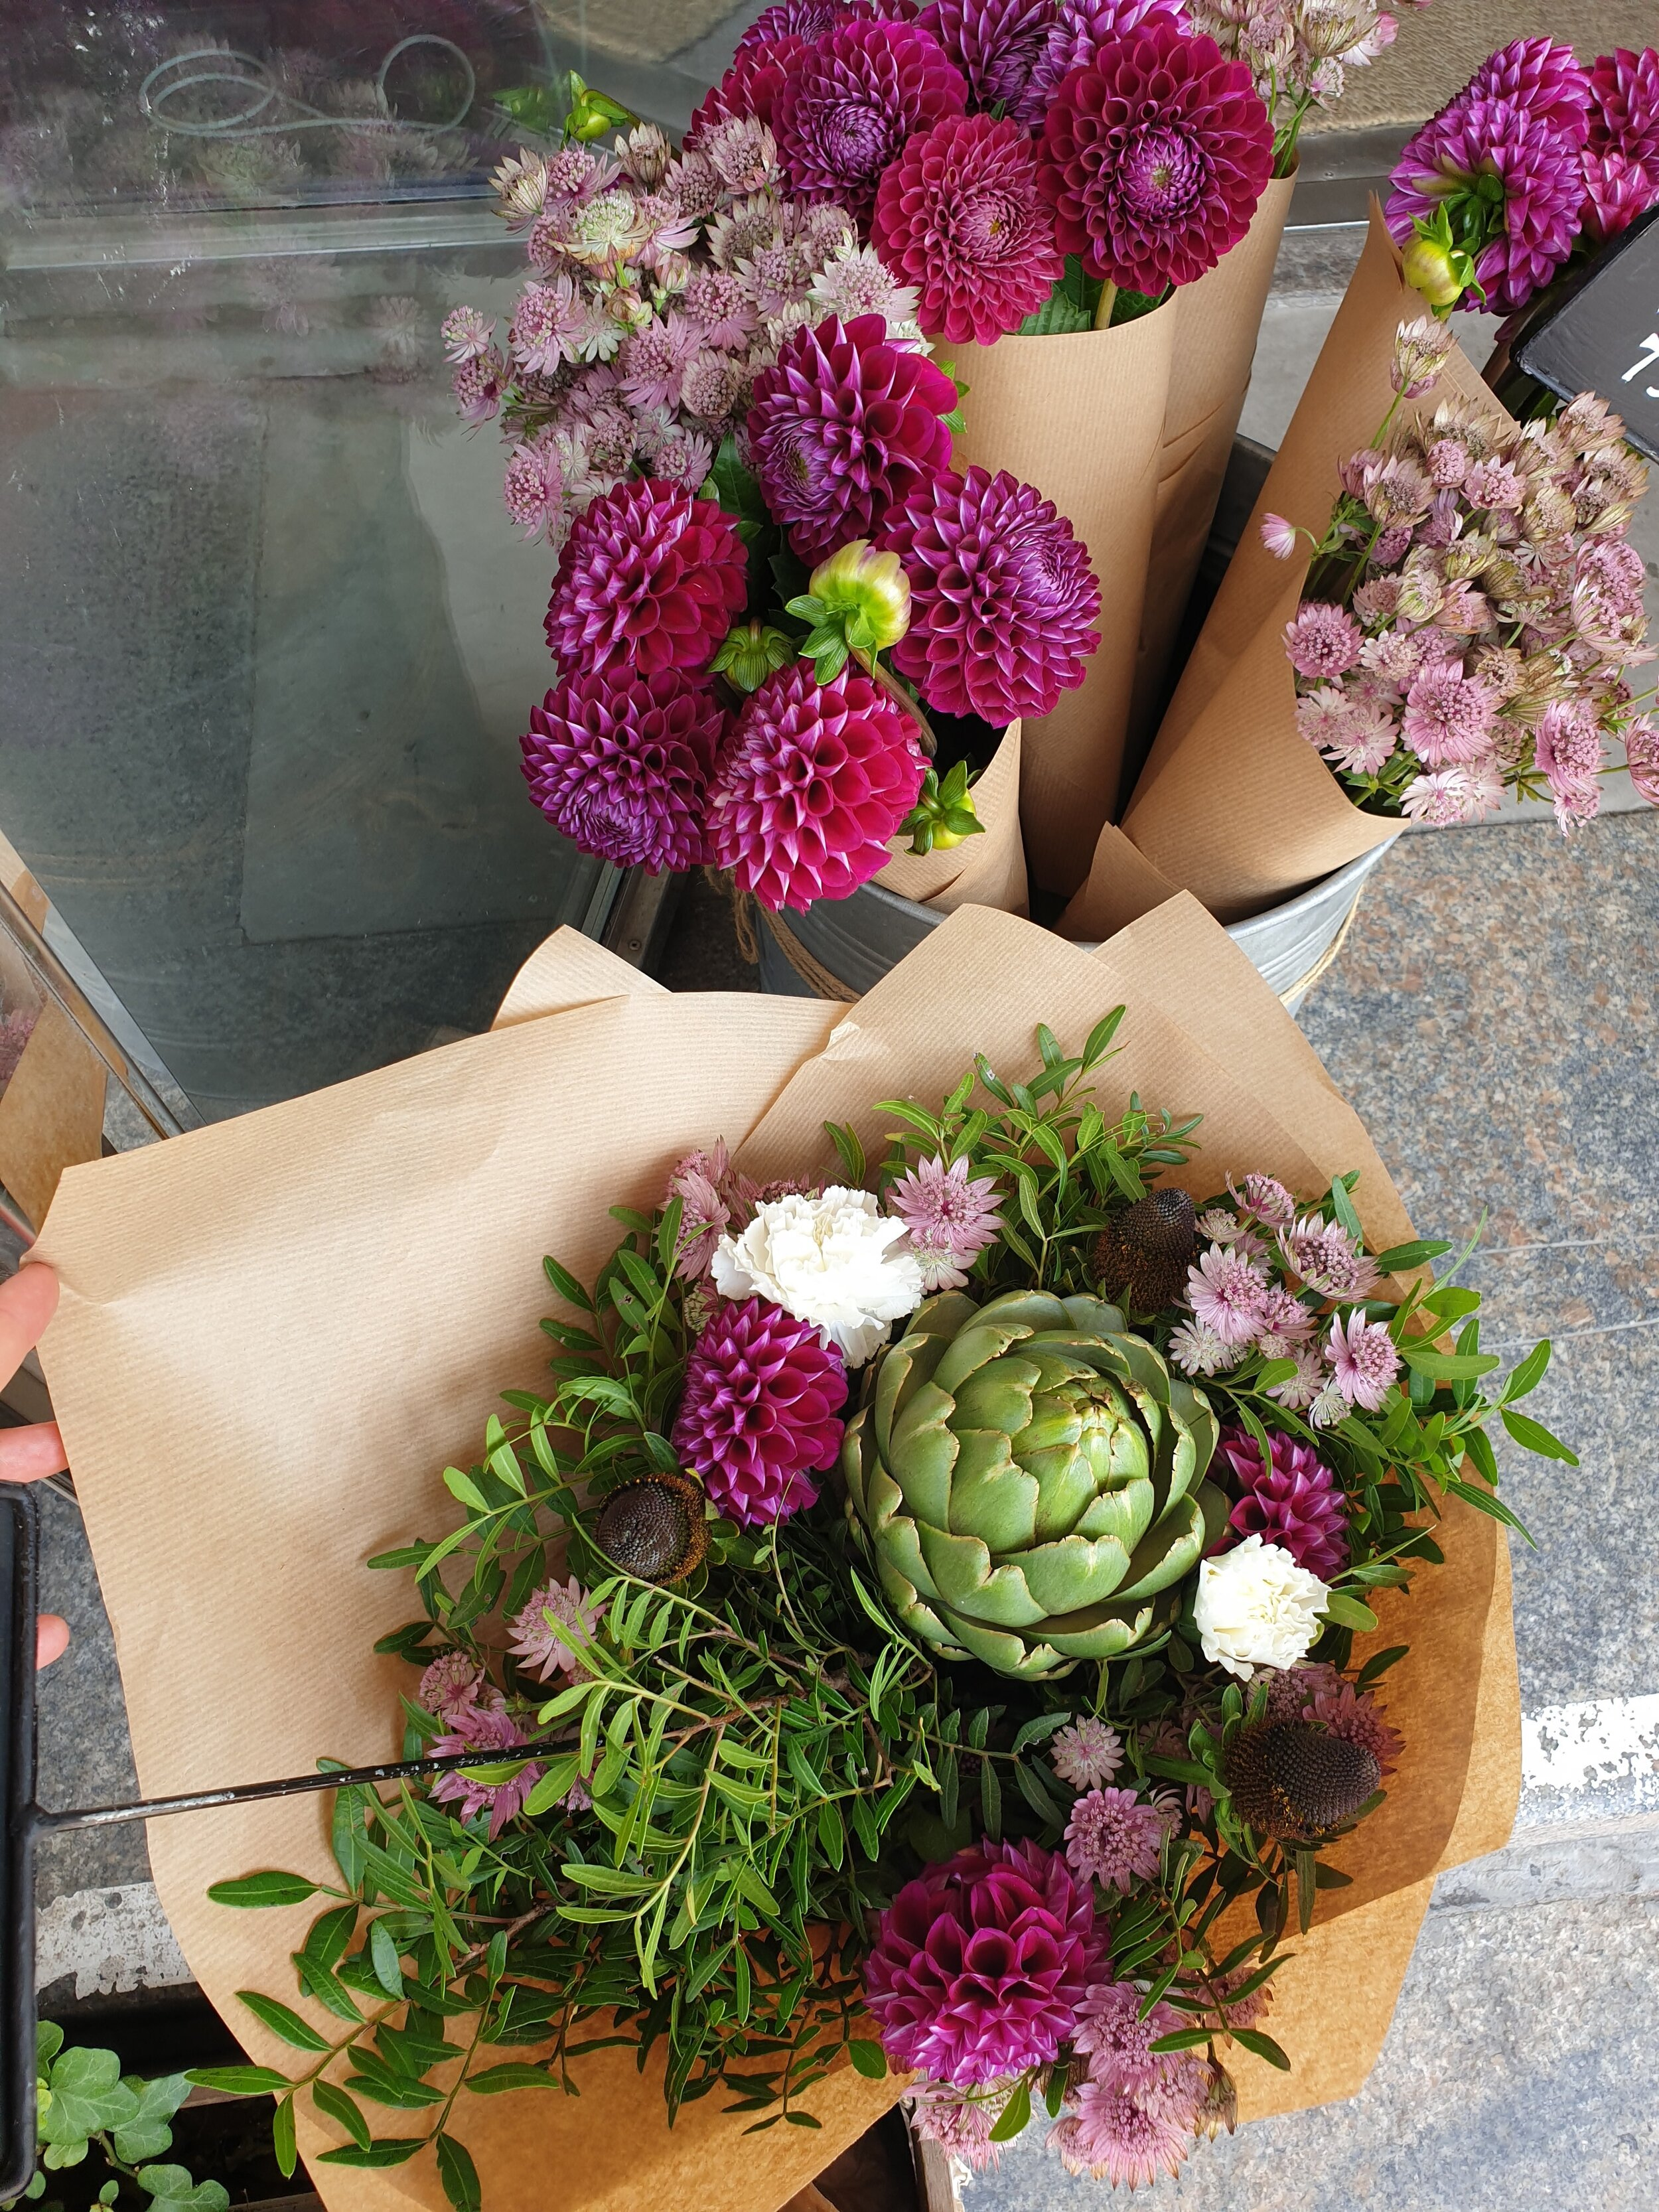 If you wanna stop for design in Lund, this is your place. Beautiful bouquets are not gonna leave you empty-handed.